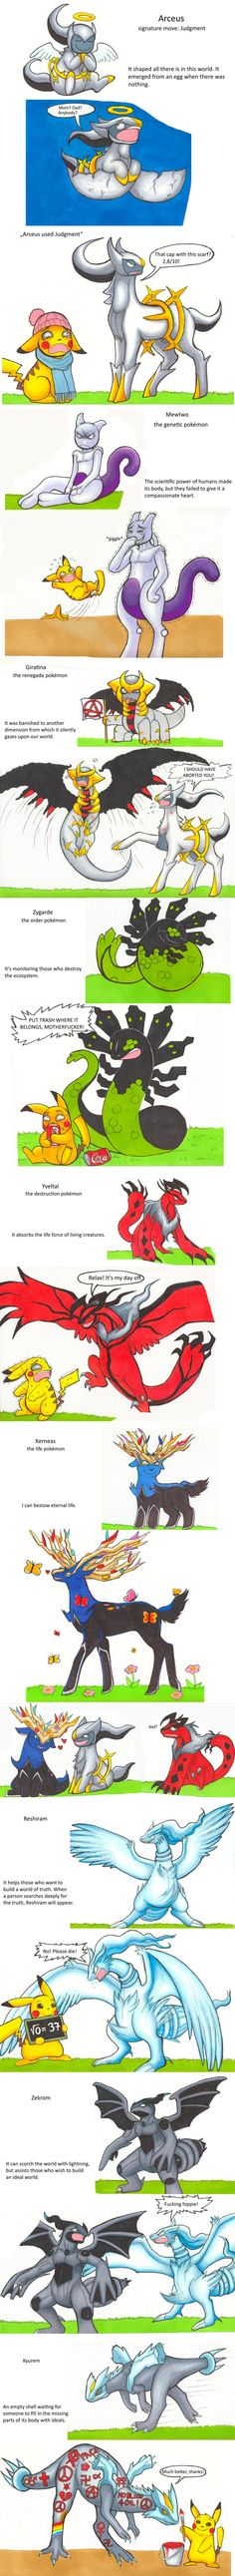 Pkm: Legendary Fools by Cadaska.deviantart.com on @DeviantArt